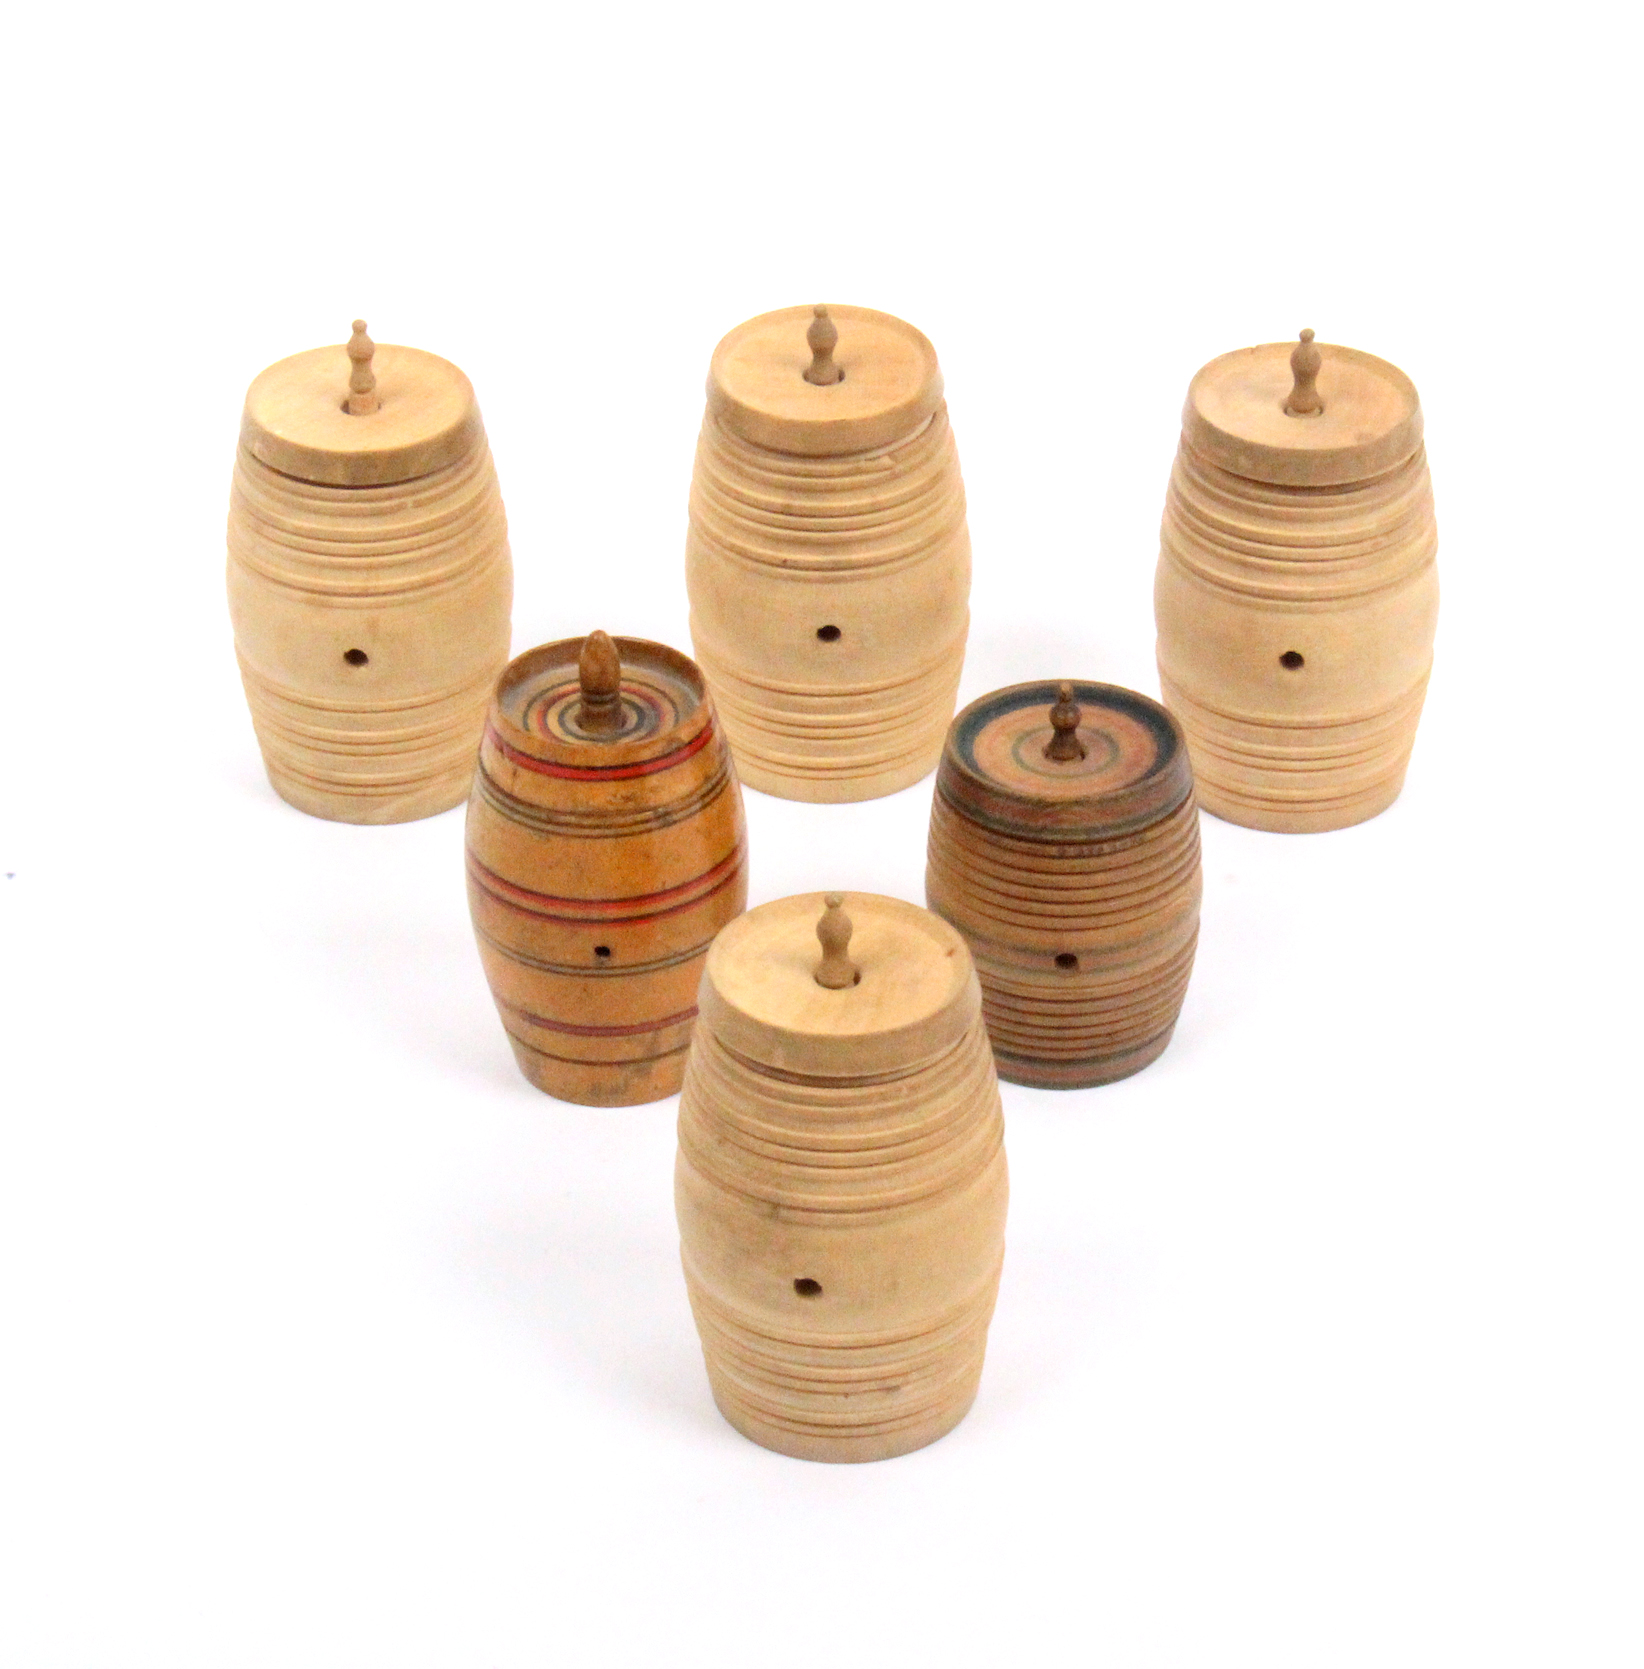 Lot 18 - Six whitewood cotton barrels comprising a set of four in plain whitewood and two variant examples